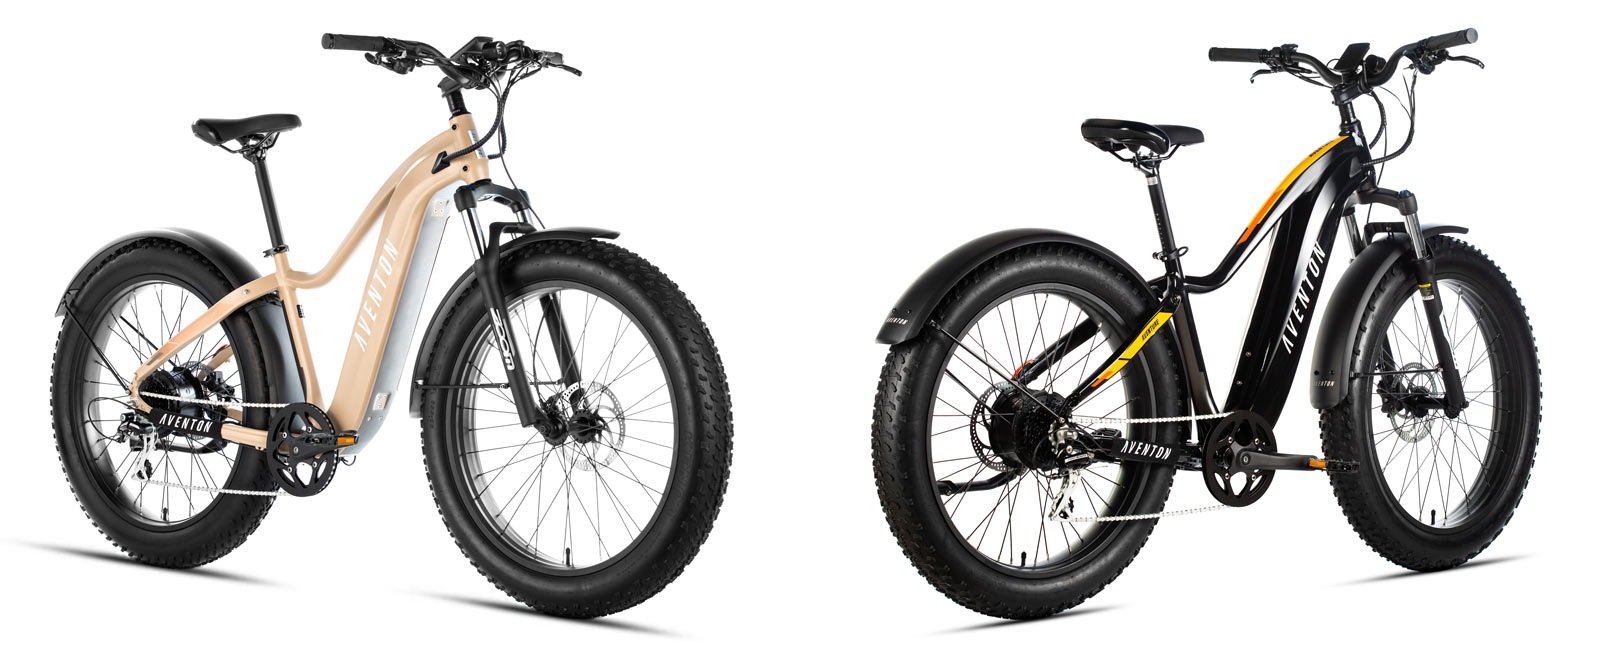 aventon aventure fat tire commuter ebike shown from front and rear angles